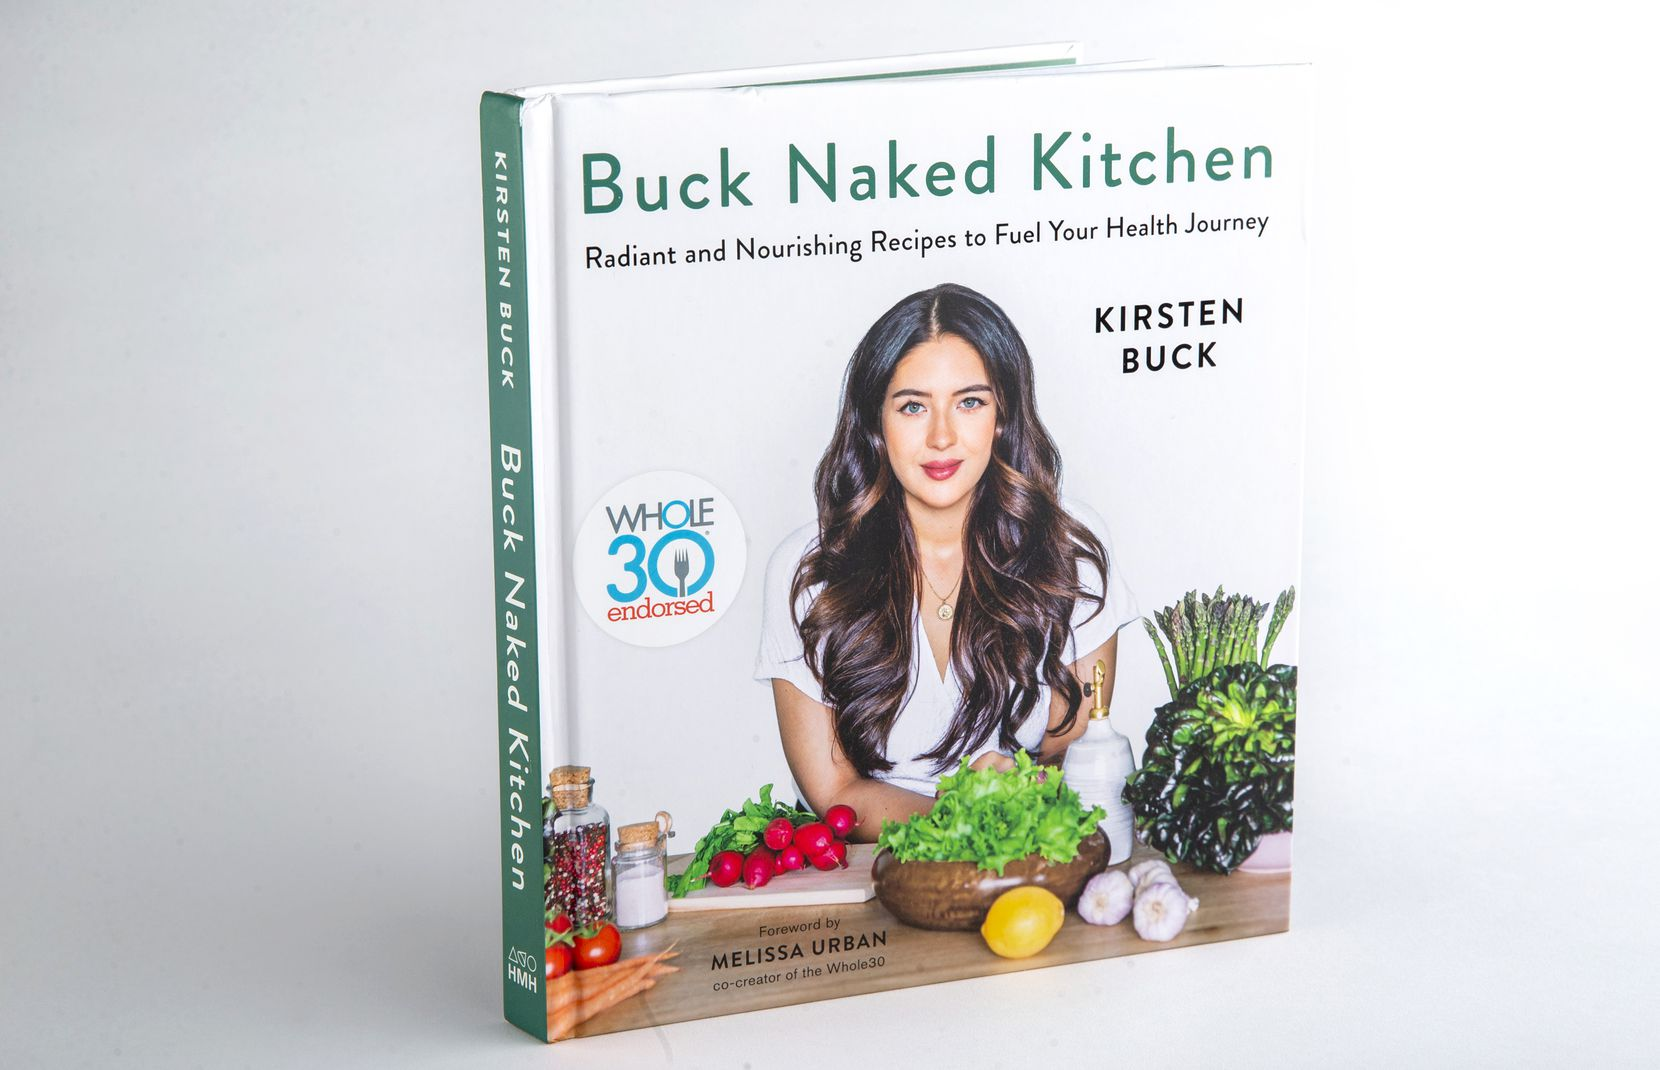 Kirstin Buck's Whole30-endorsed cookbook stemmed from her Buck Naked Kitchen blog.